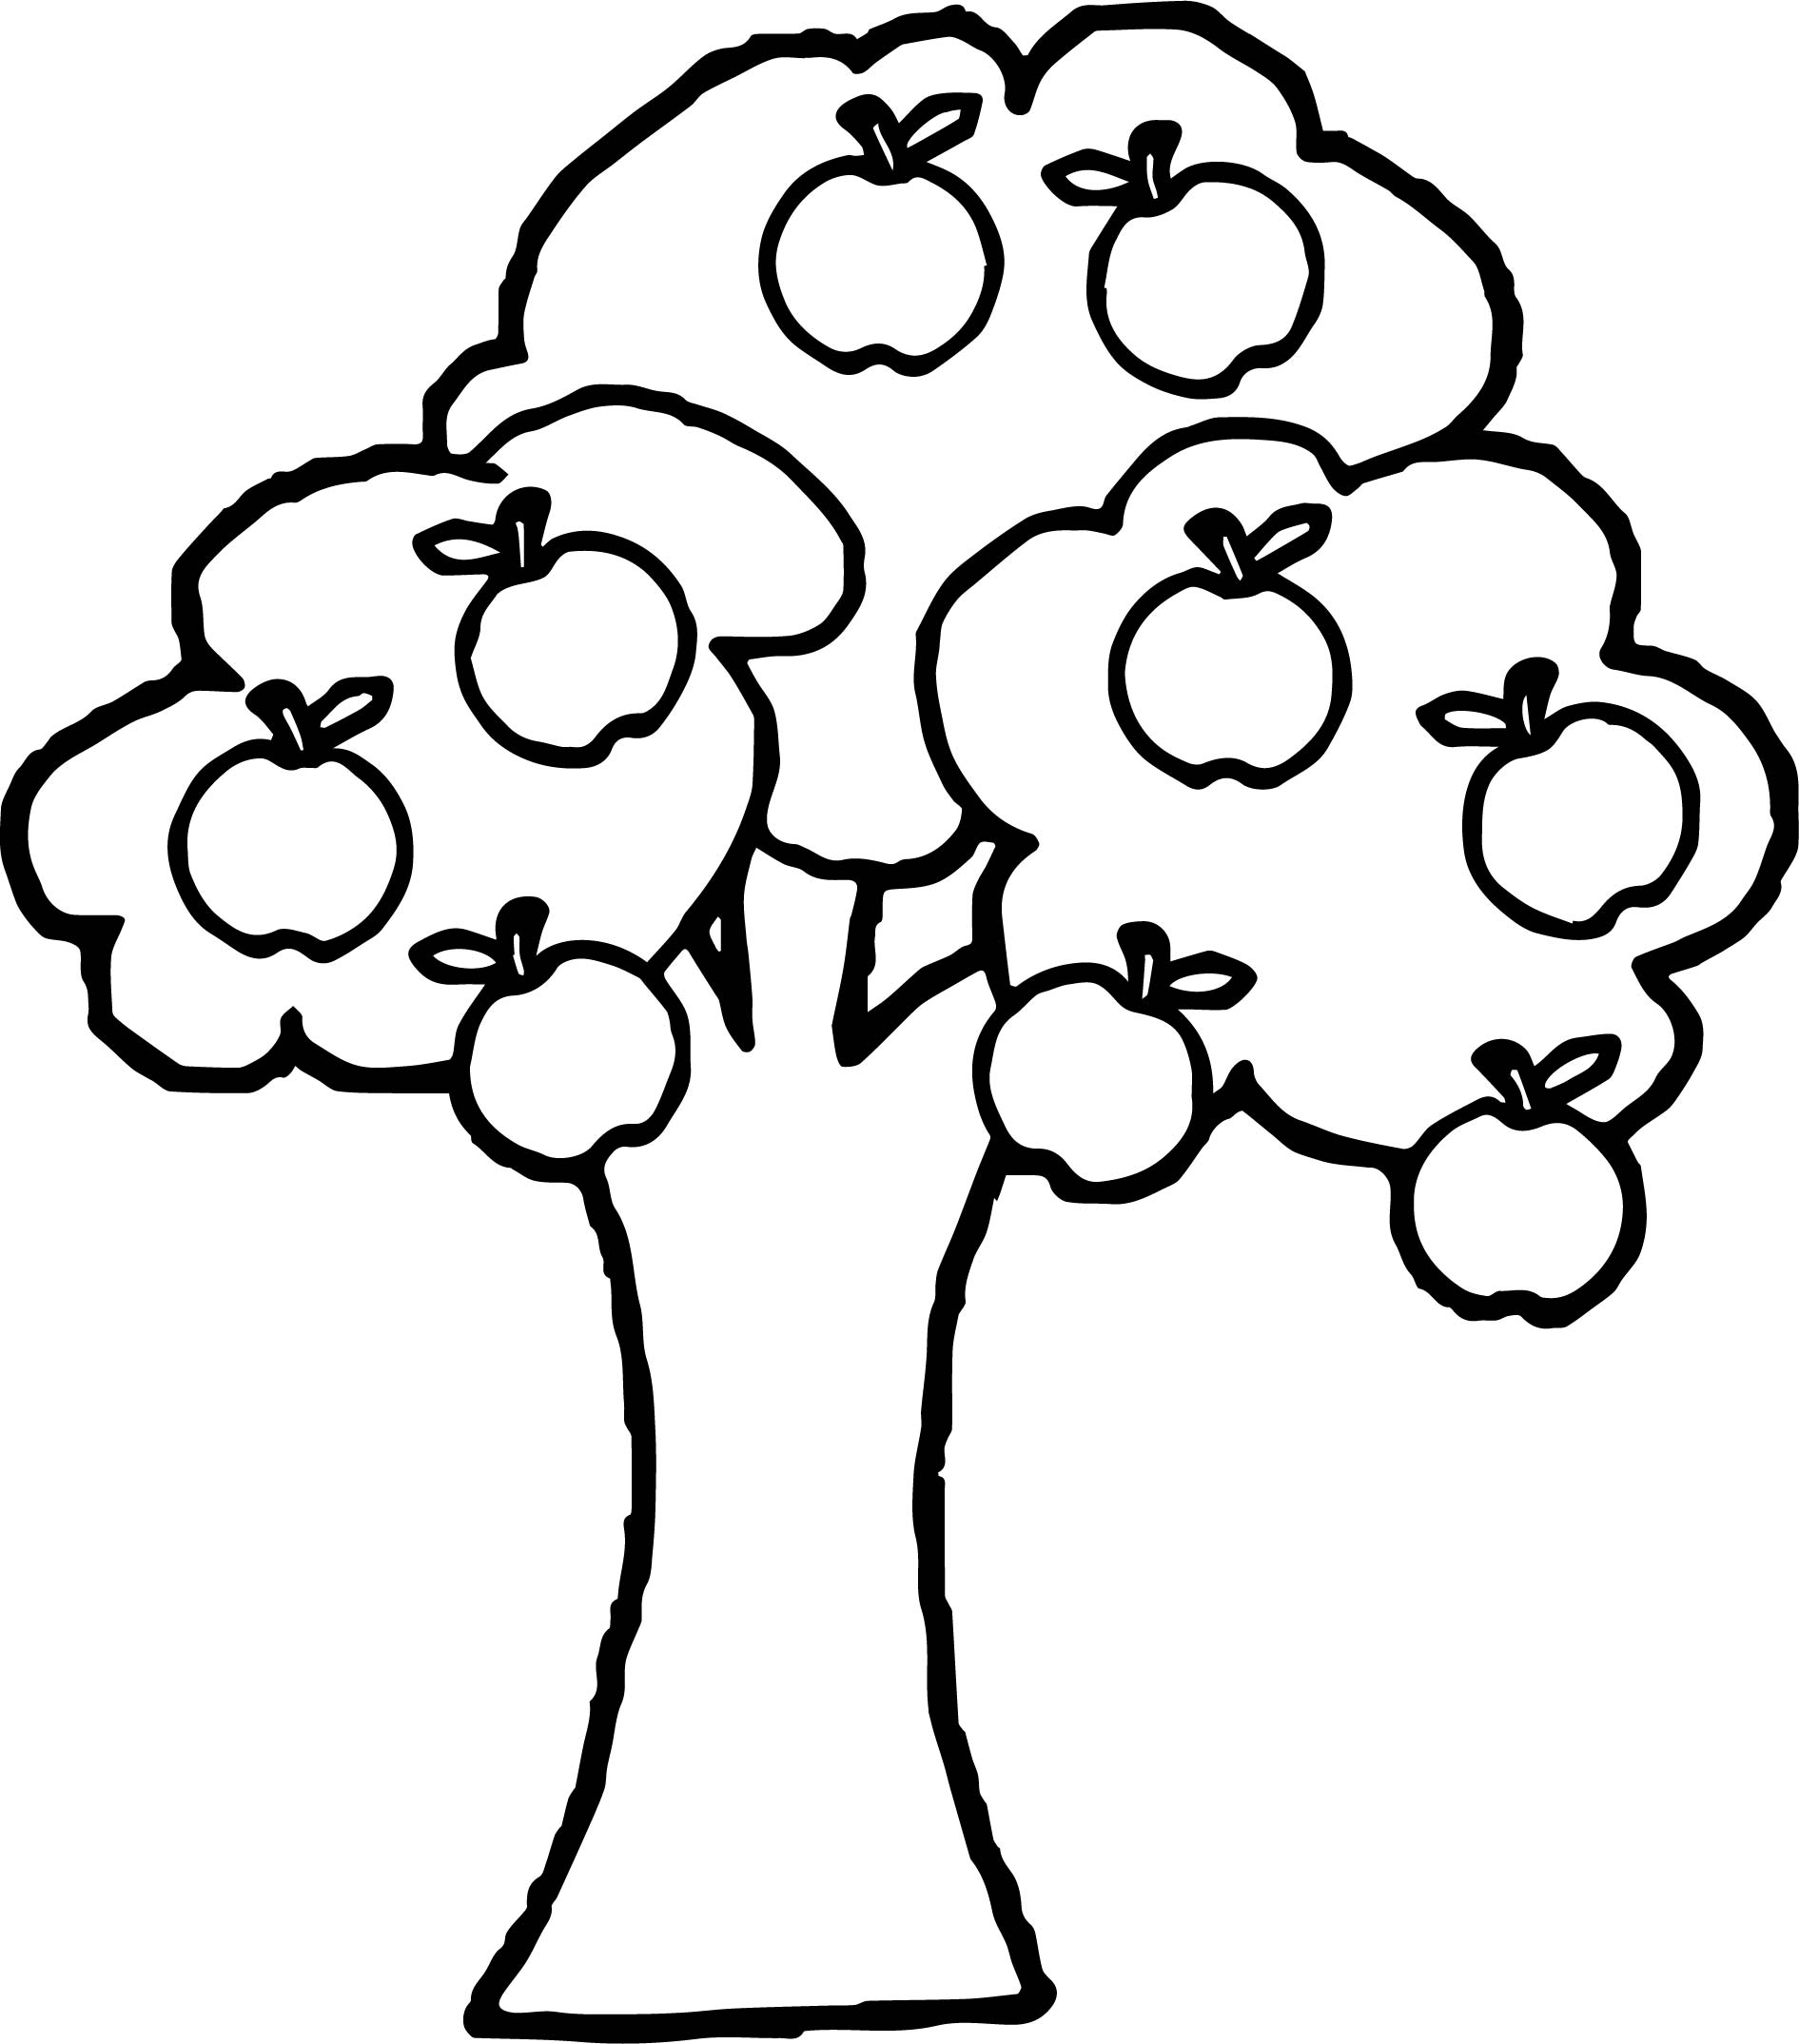 apple tree coloring pages - photo#15